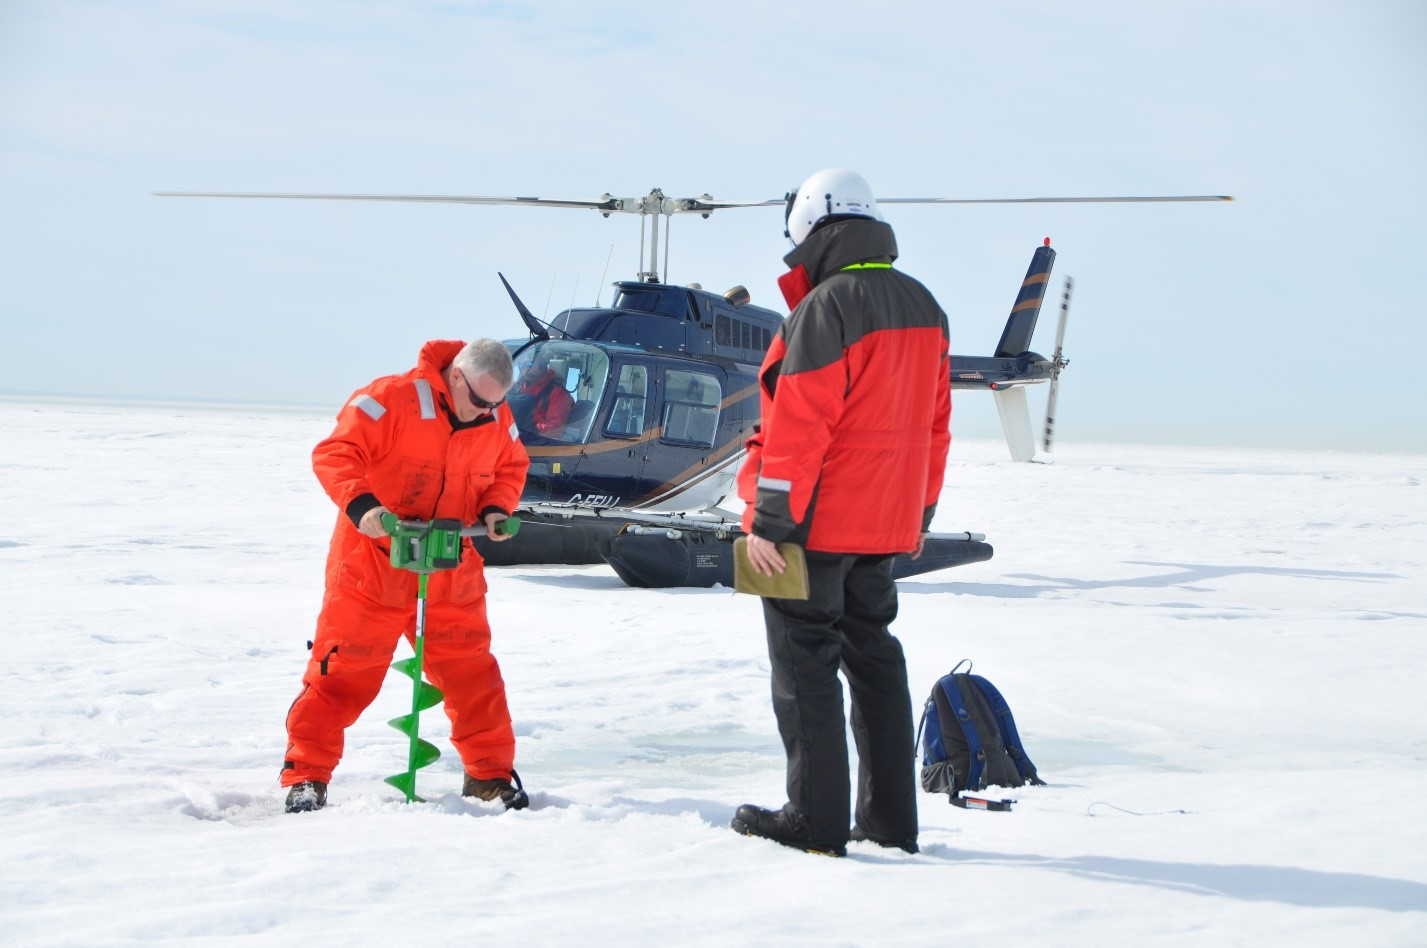 The U.S. Army Corps of Engineers, Buffalo District, and Environment Canada took a helicopter out onto Lake Erie to measure actual ice thickness at six preselected locations in 2015. Credit: Andrew Kornacki